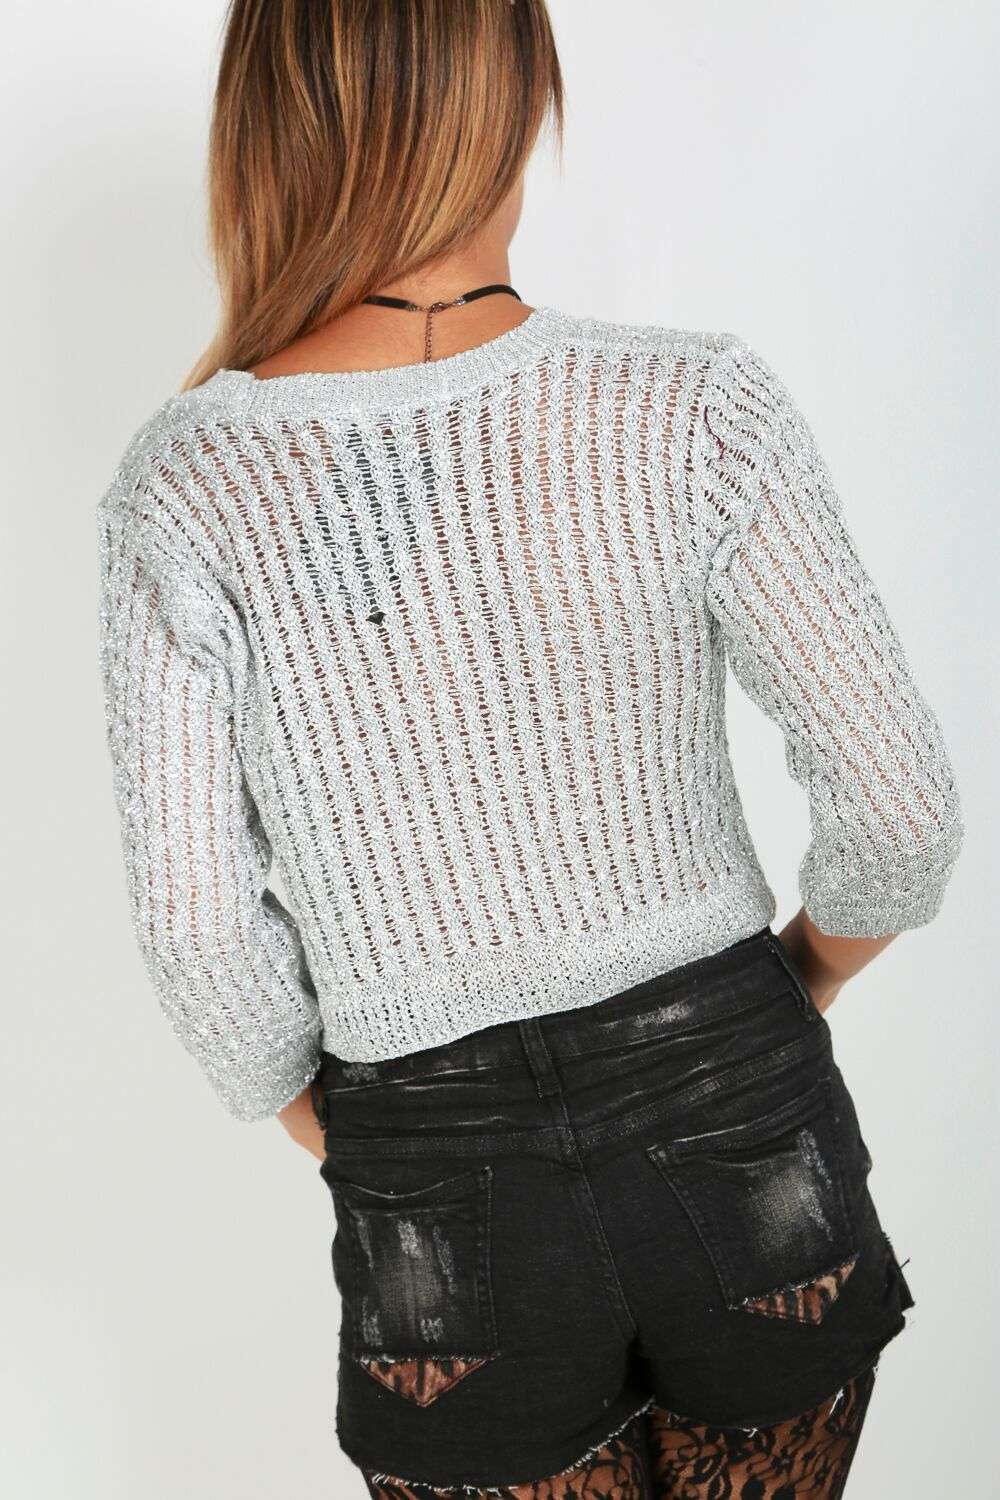 Georgia Metallic Crop Top - bejealous-com